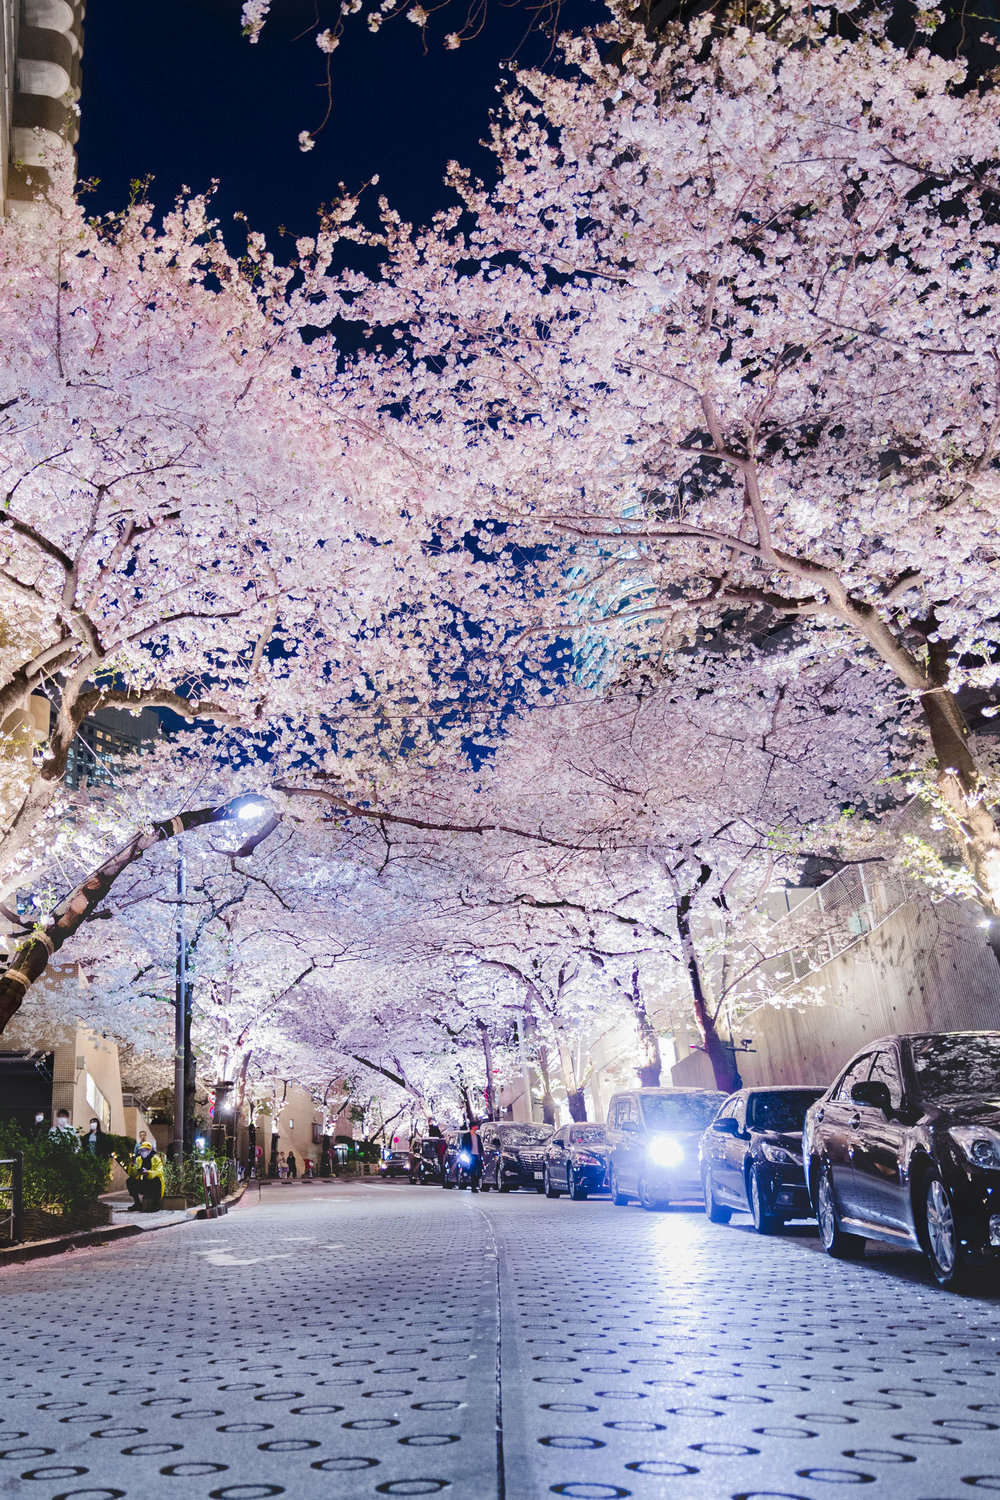 Illuminated cherry blossoms over a street at Ark Hills